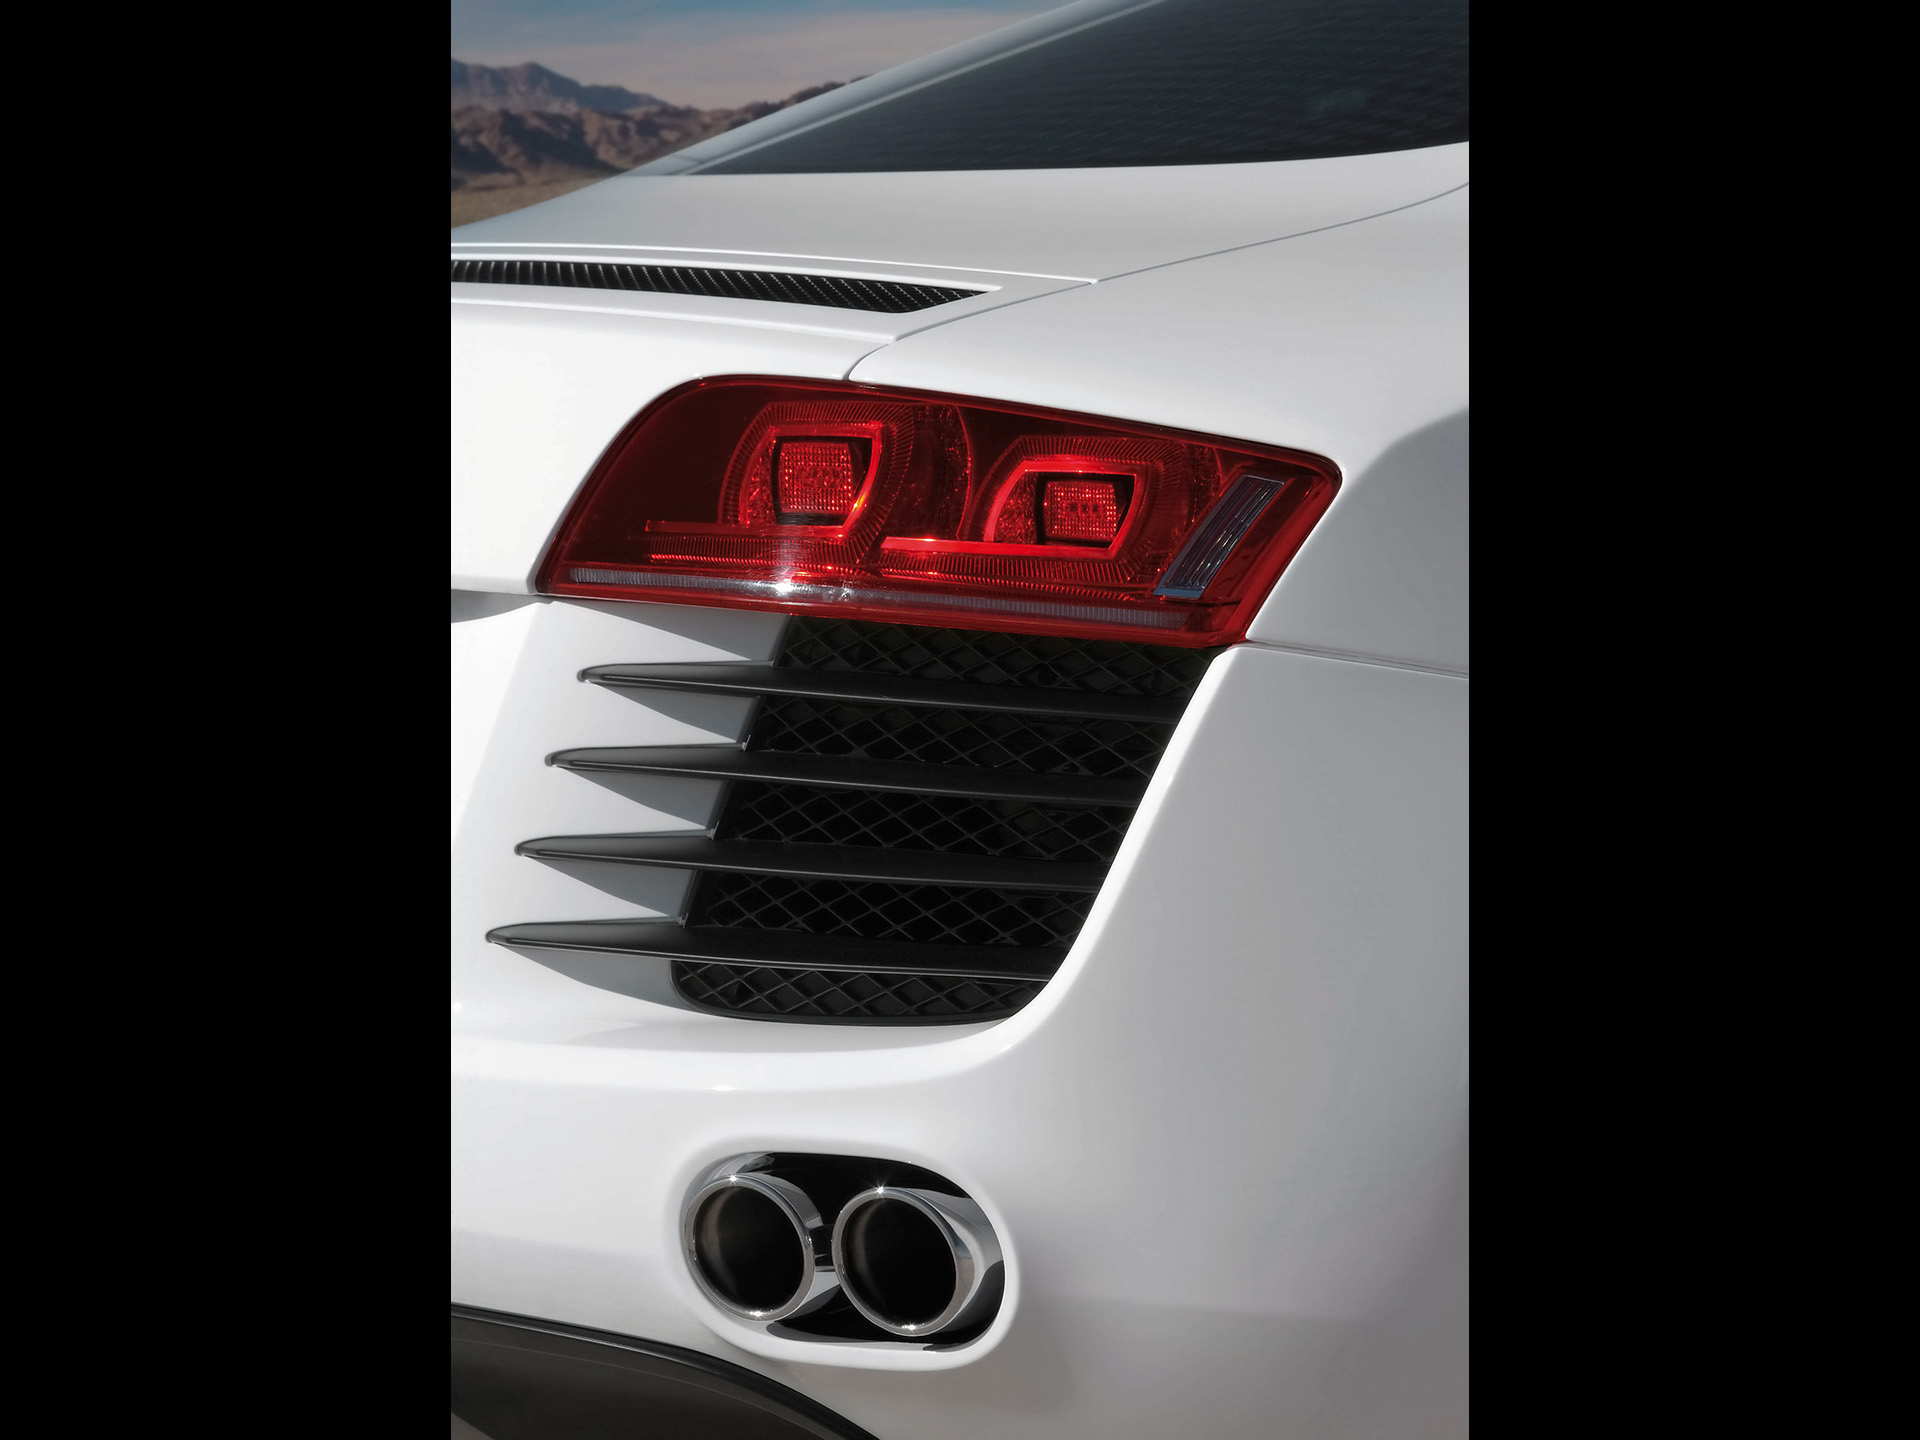 2007-Audi-R8-Rear-Light-And-Tail-Pipes-1920x1440.jpg